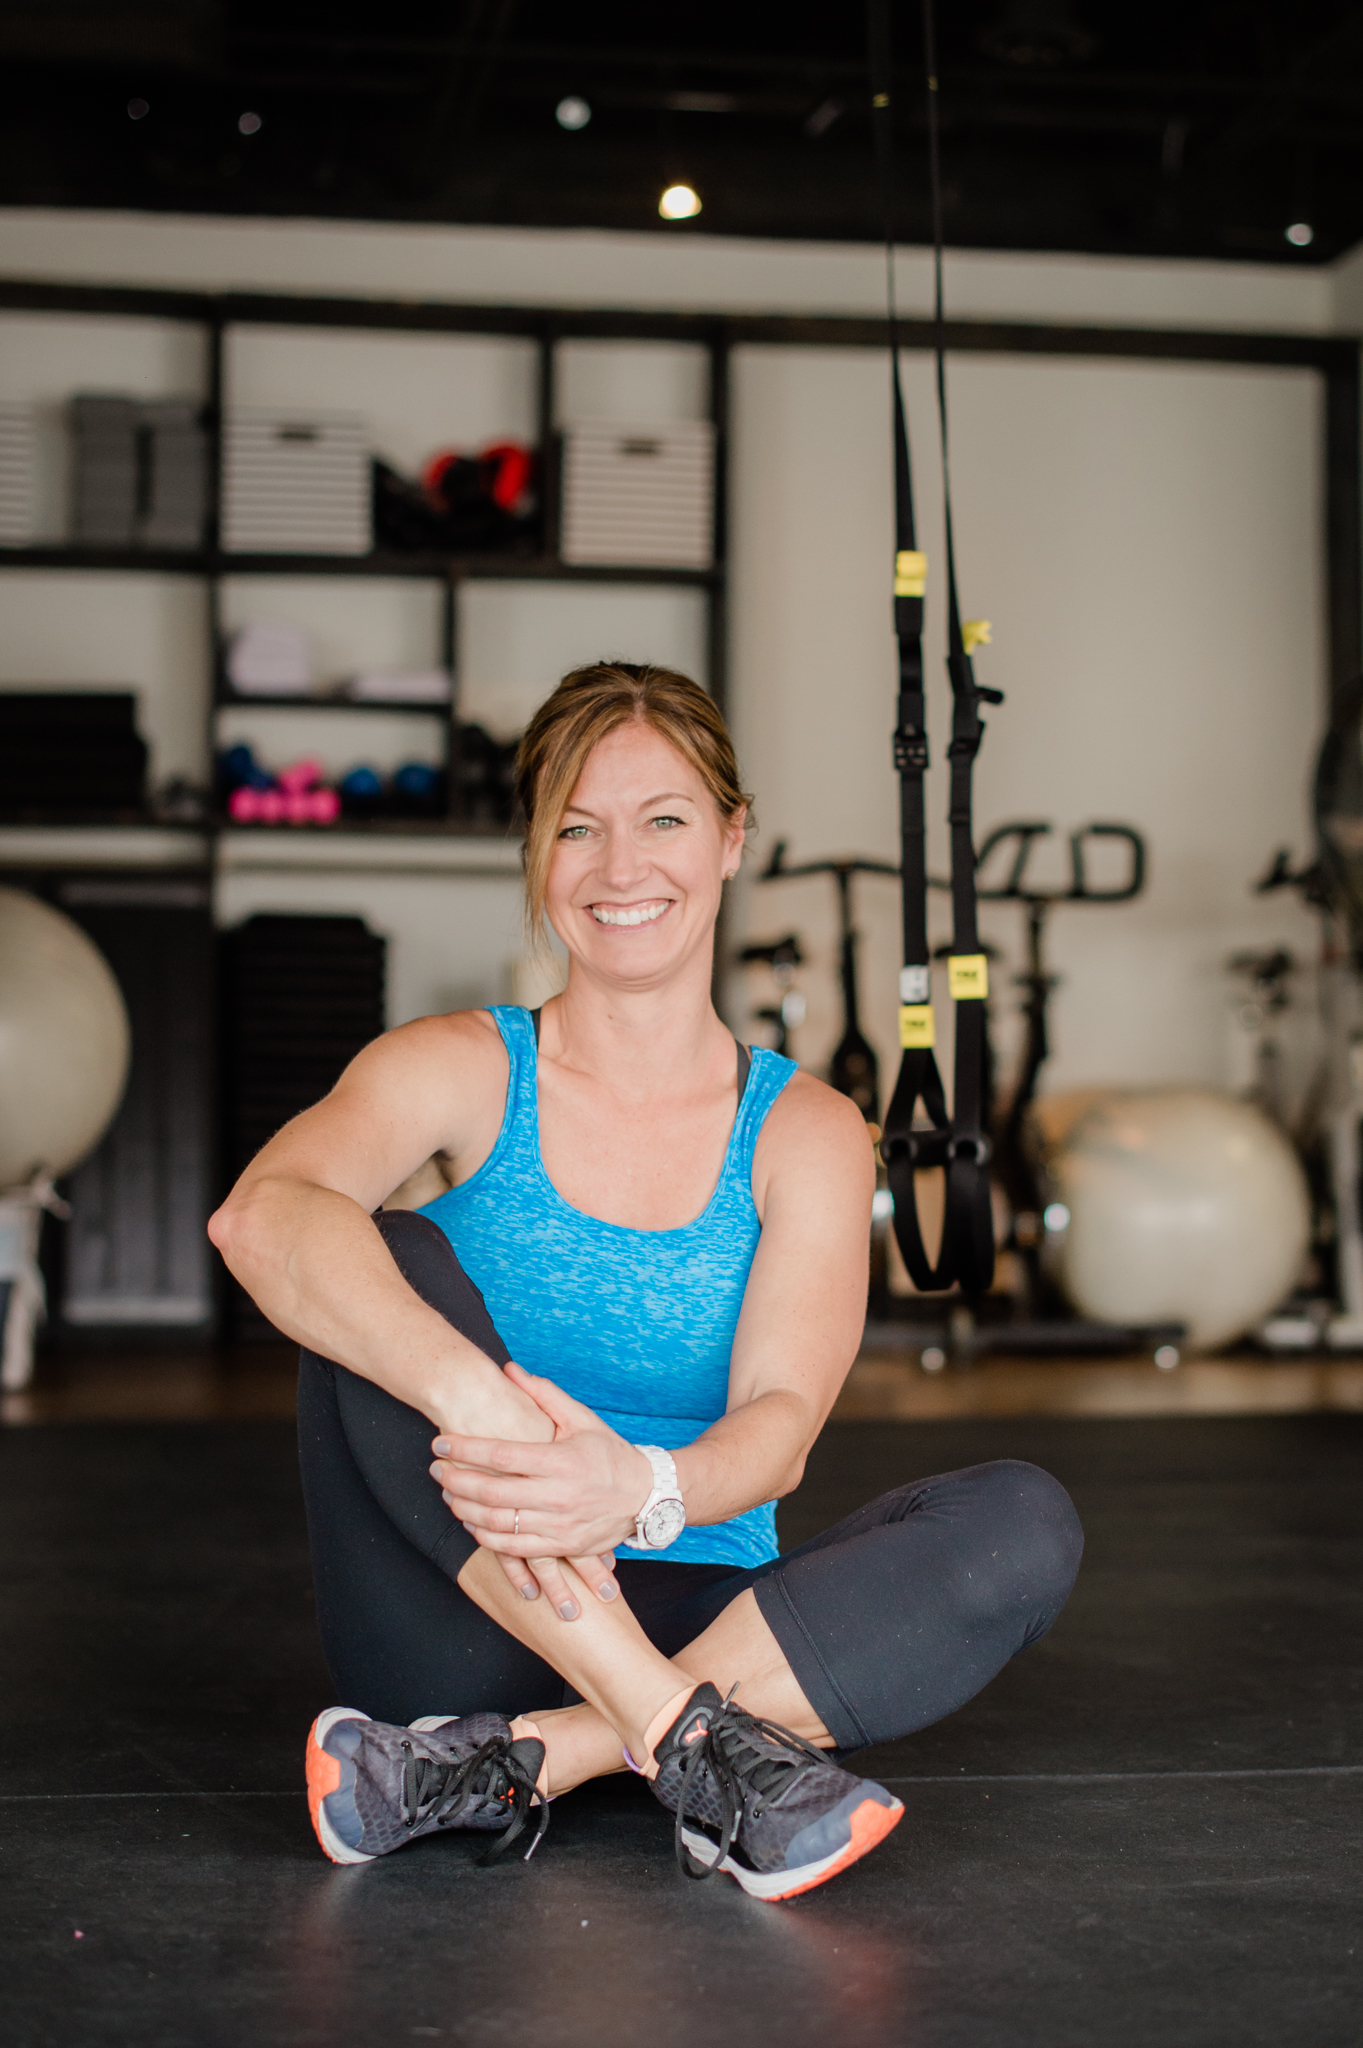 Lori Teppara sits on the floor of FIT HUB smiling.